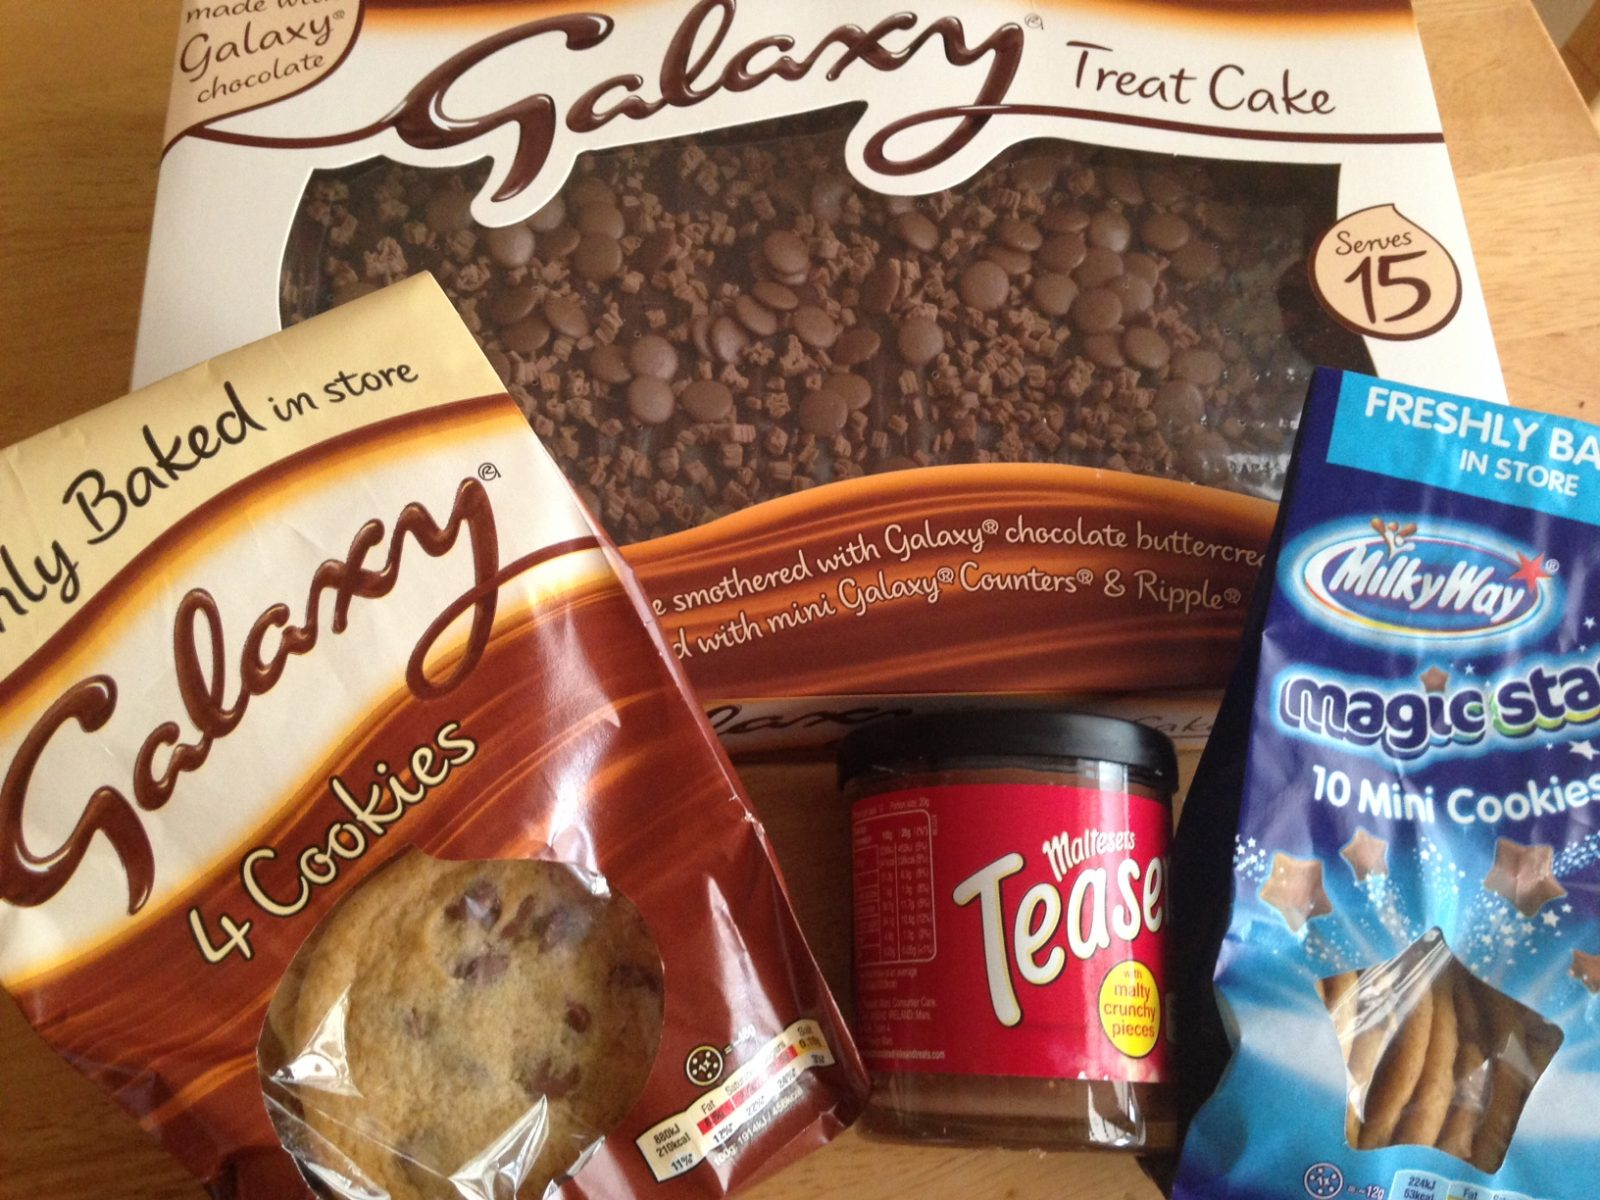 Malteser Chocolate Spread (and other new choccy goodies)